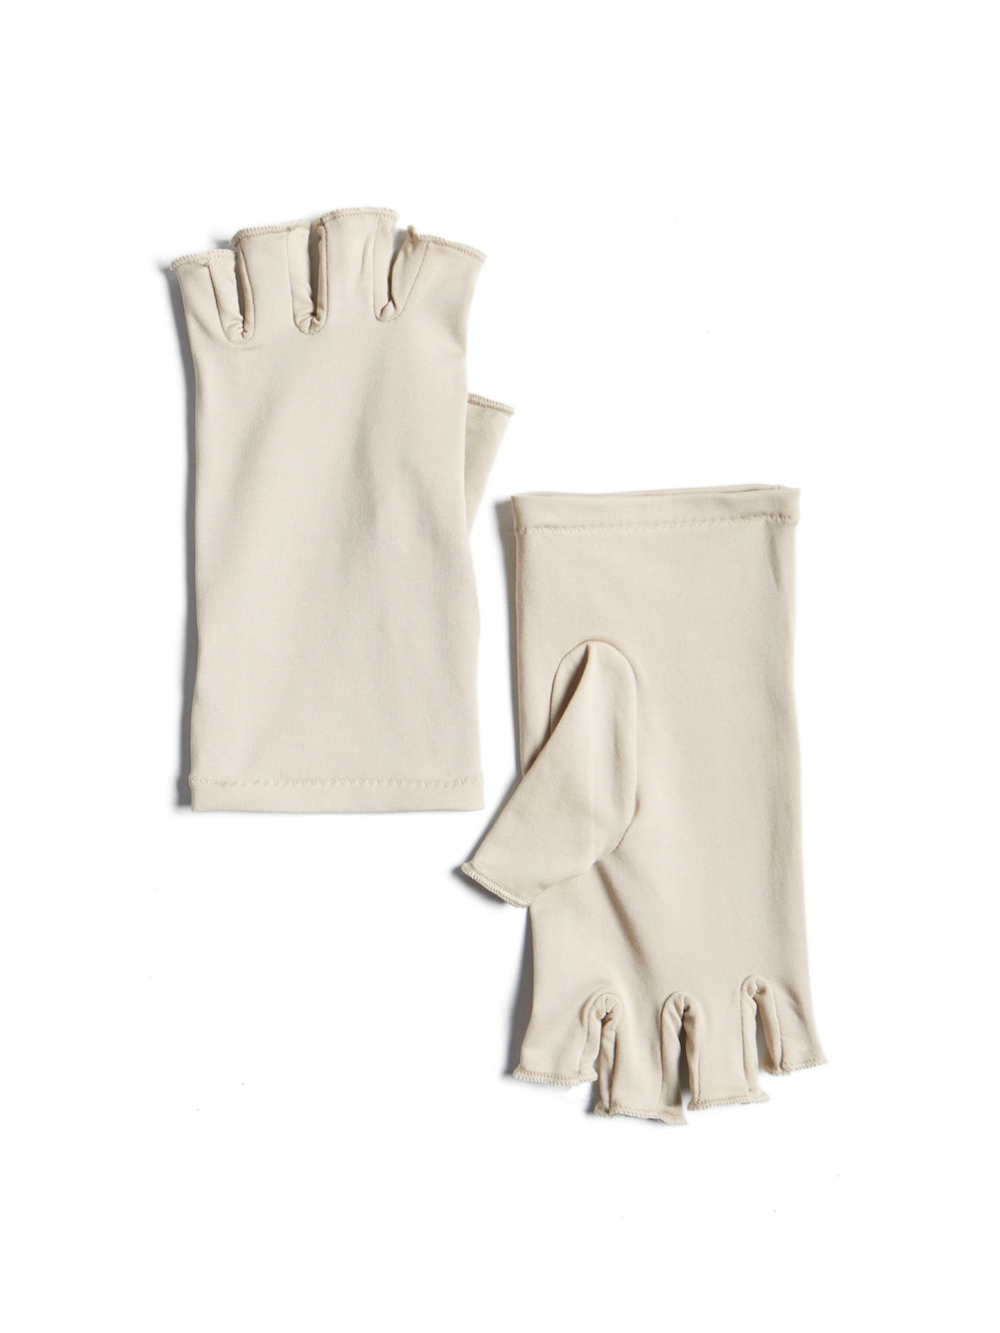 These Gloves Make Your Hands Look Younger and They're Discounted for Nordstrom's Anniversary Sale